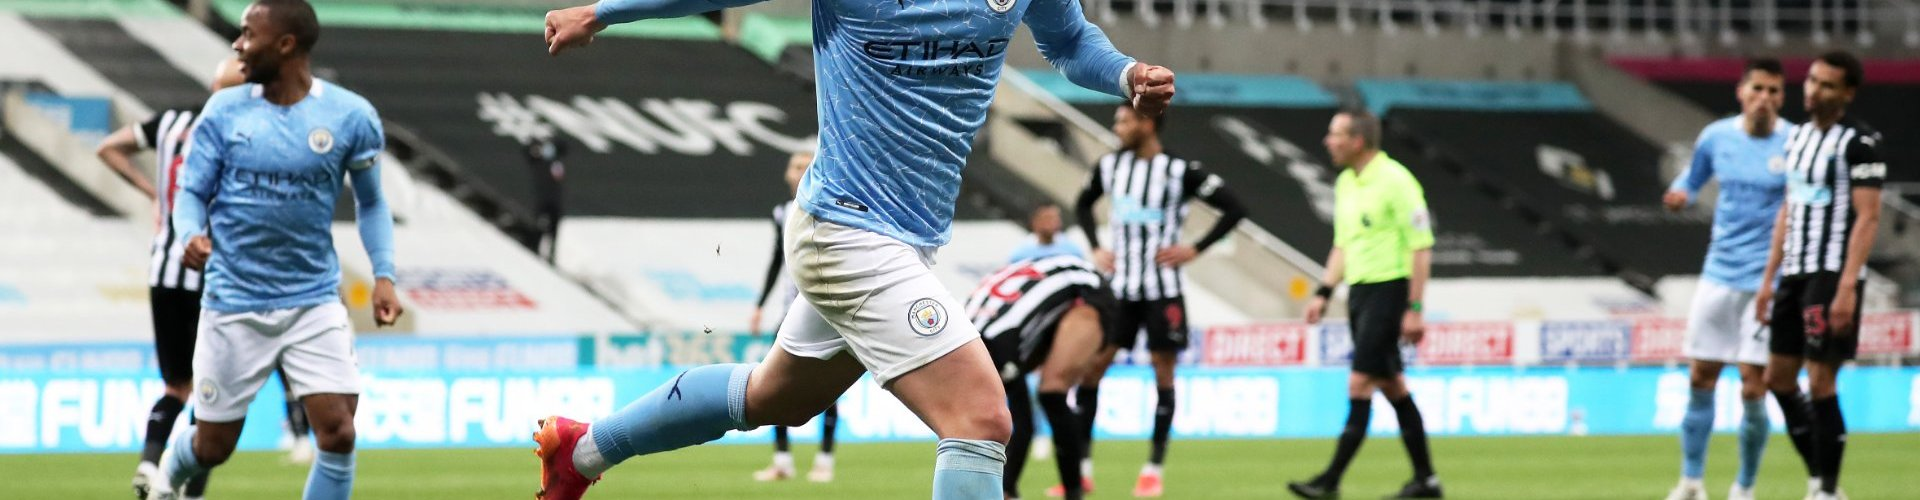 Newcastle United 3 - 4 Manchester City - Goal Highlights